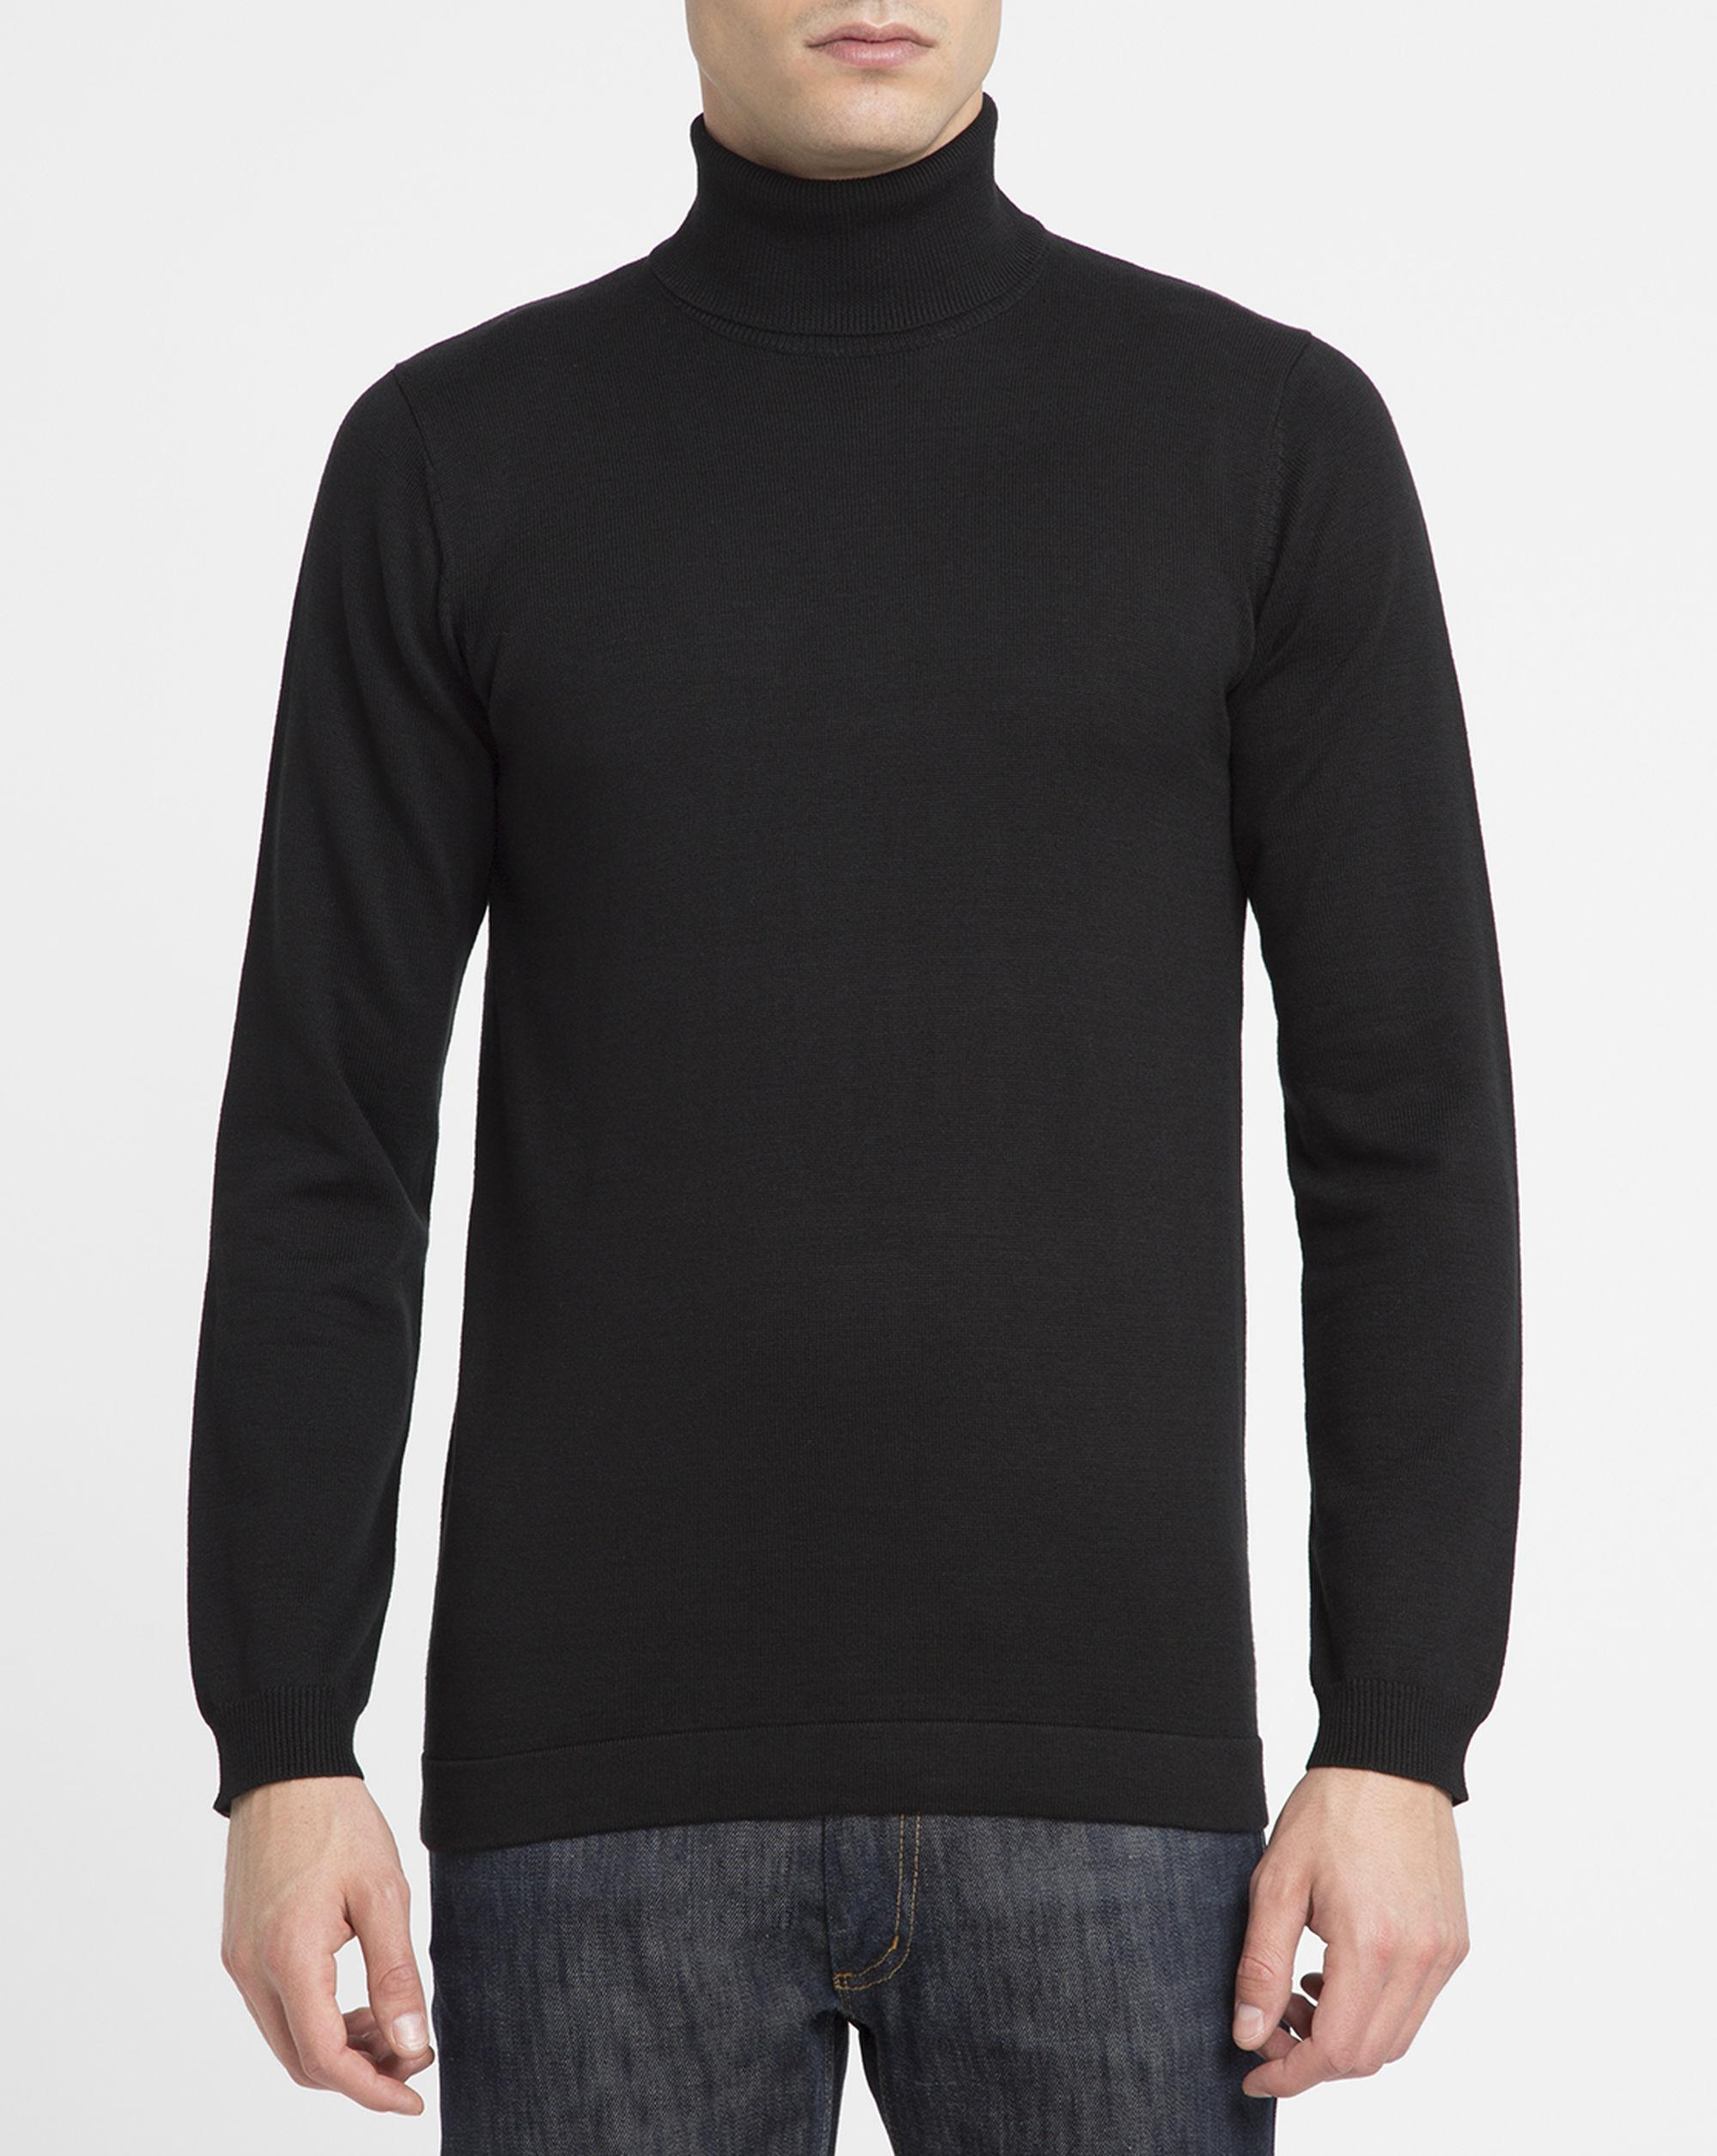 Genuine Polo Ralph Lauren polo neck % merino wool jumper. Photos do not do justice as this is a really nice jumper - never worn - as new condition - really lovely soft jumper. Mens Polo Turtle Roll Neck Knitted Jumper Sweater Slim Fit Pullover Tops Shirt W.